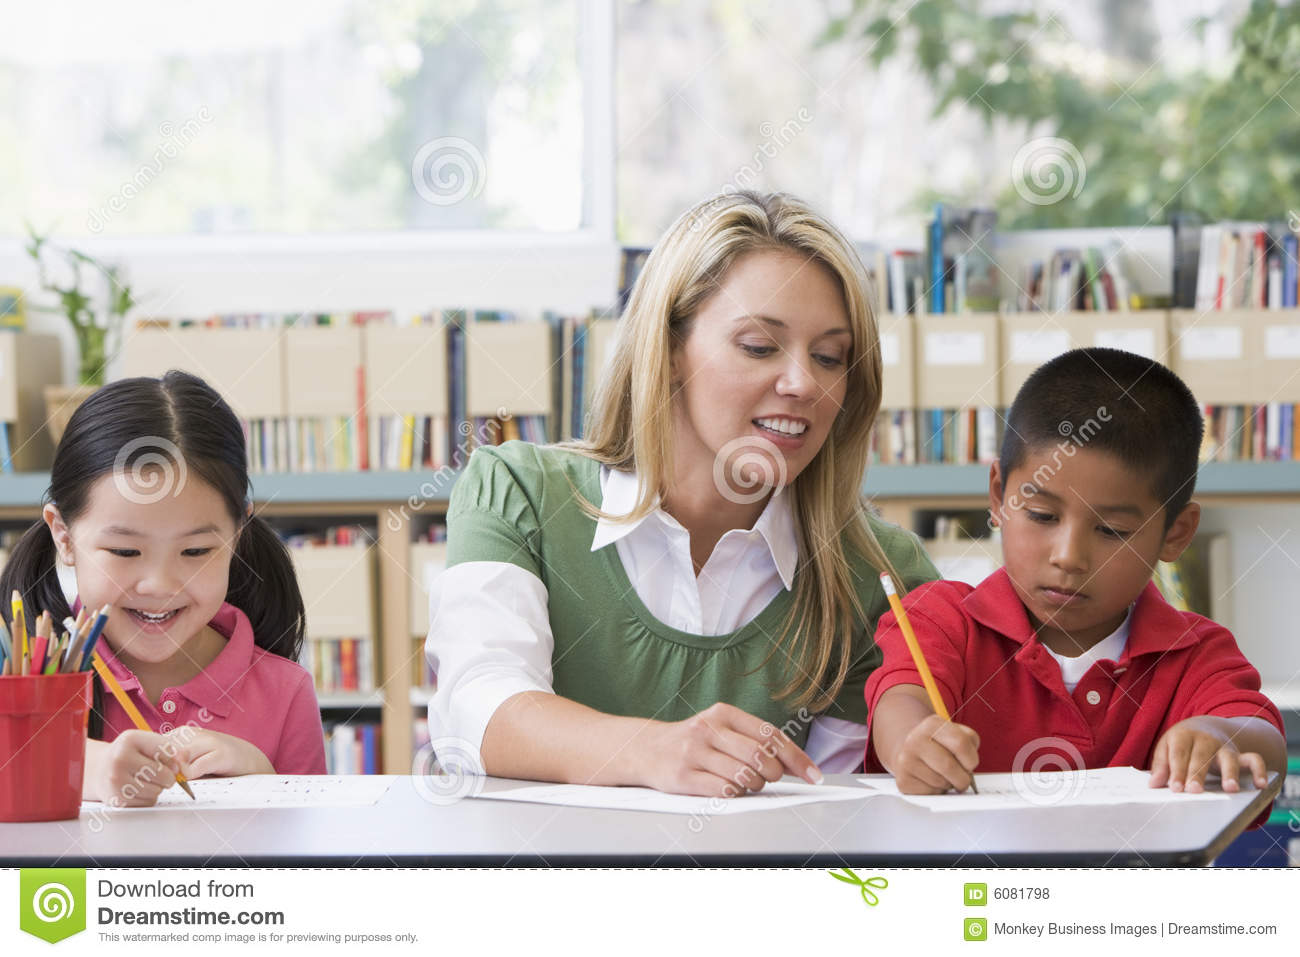 Teacher helping students with writing skills